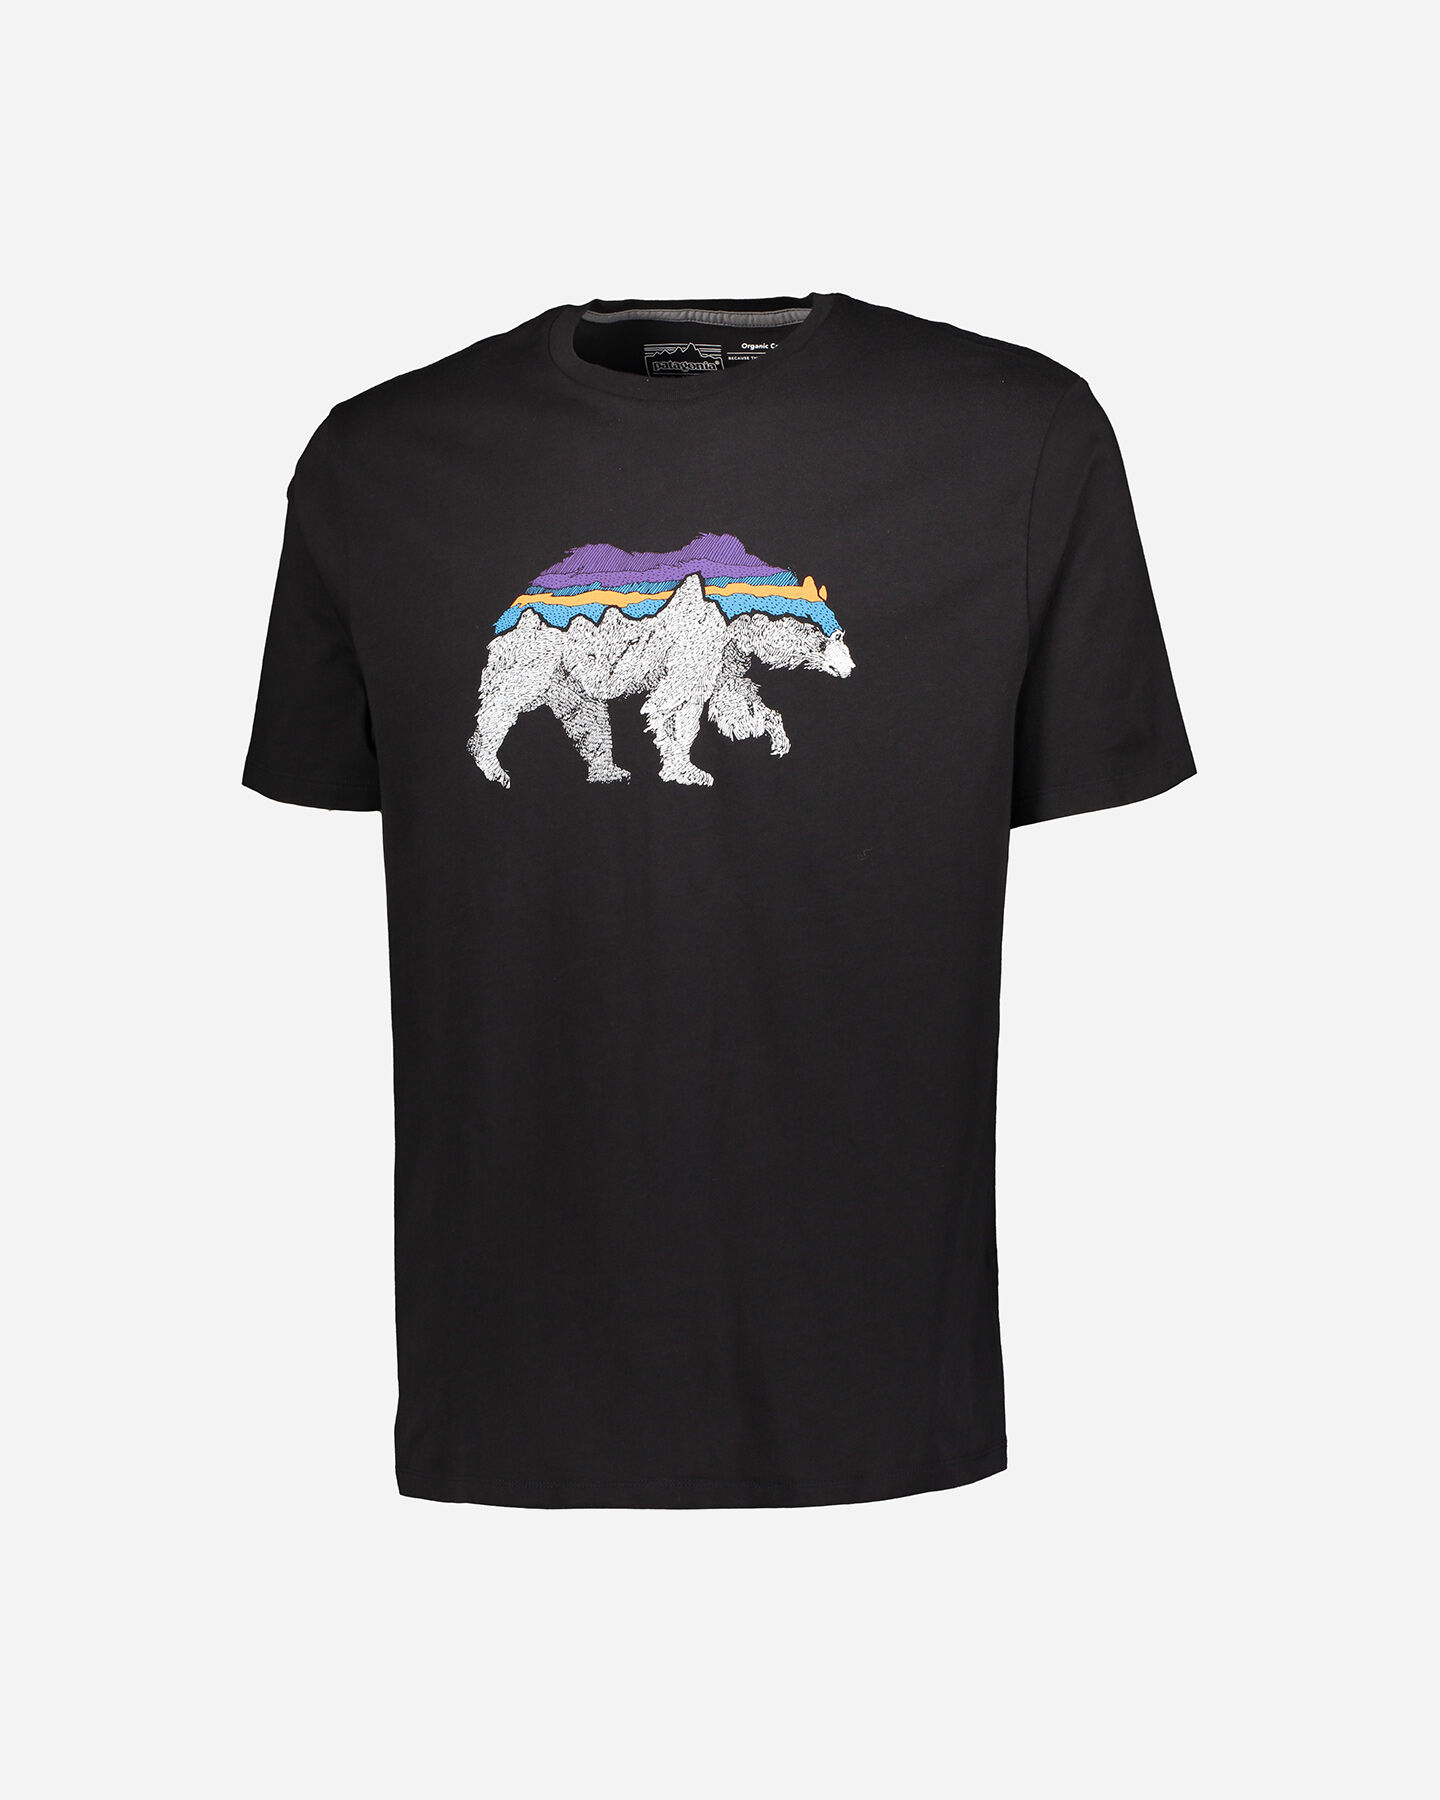 T-Shirt PATAGONIA BACK FOR GOOD ORGANIC M S4089222 scatto 0